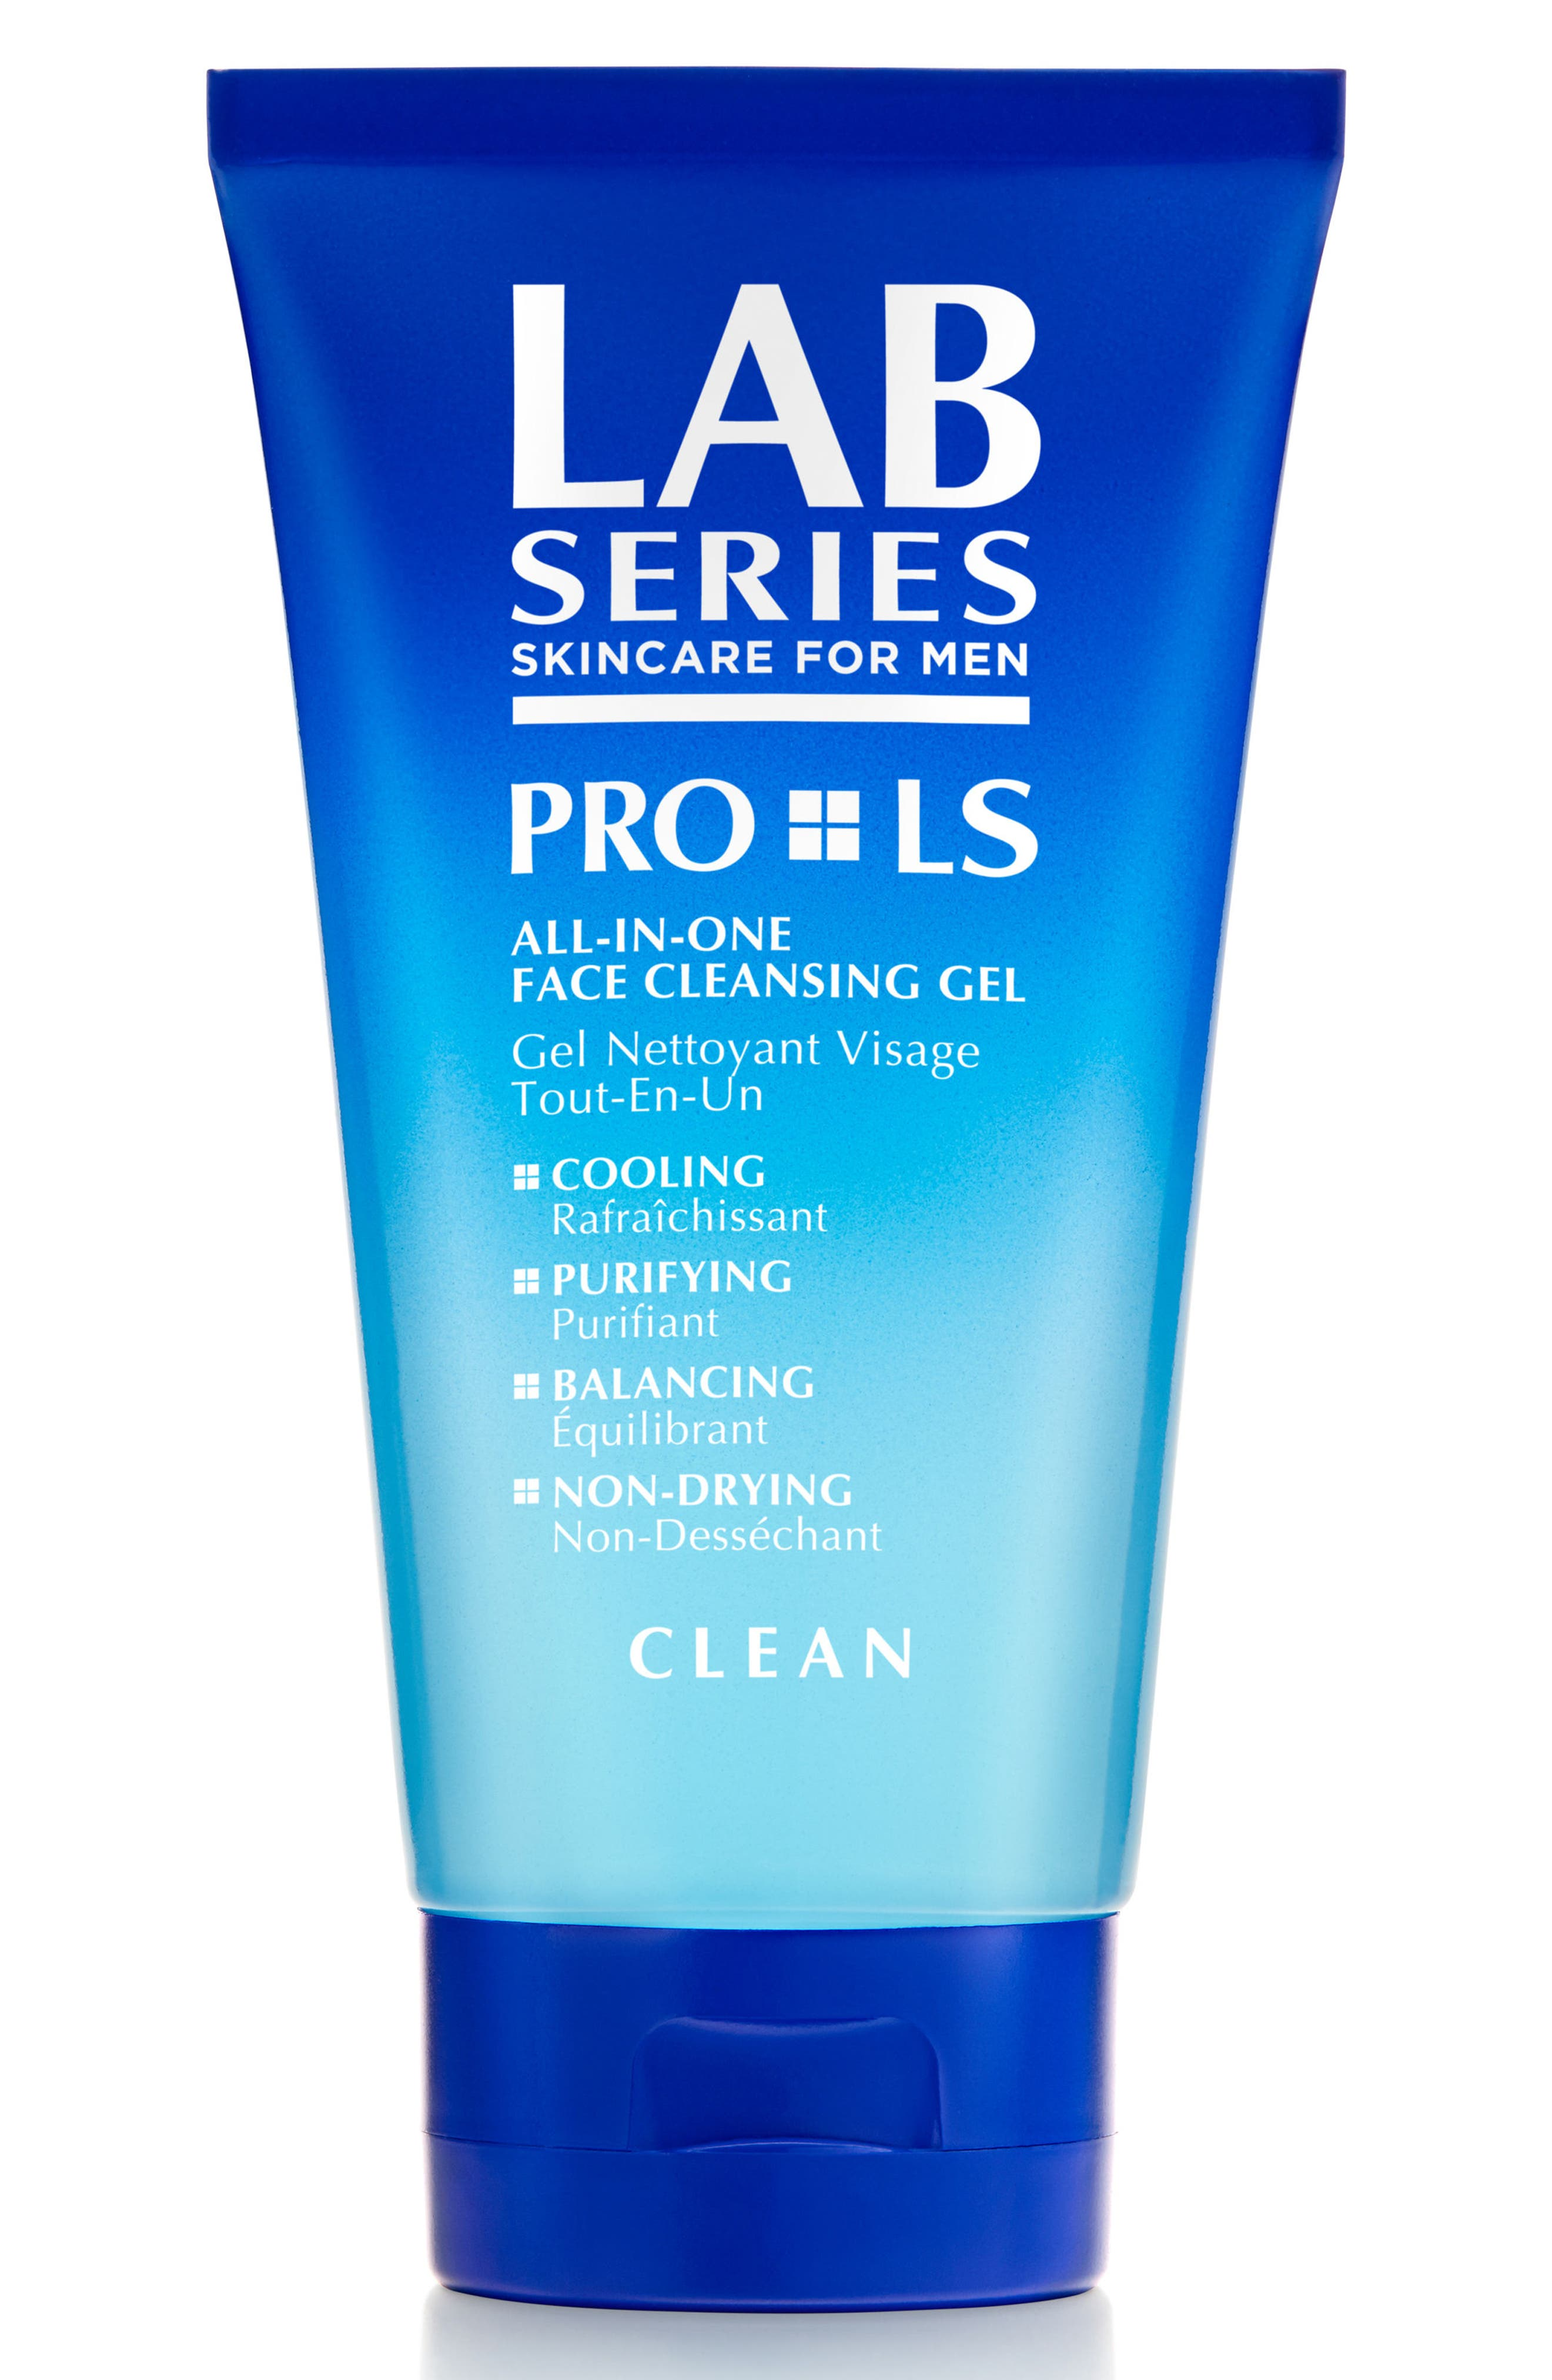 LAB SERIES SKINCARE FOR MEN PRO LS All-in-One Face Cleansing Gel, Main, color, NO COLOR